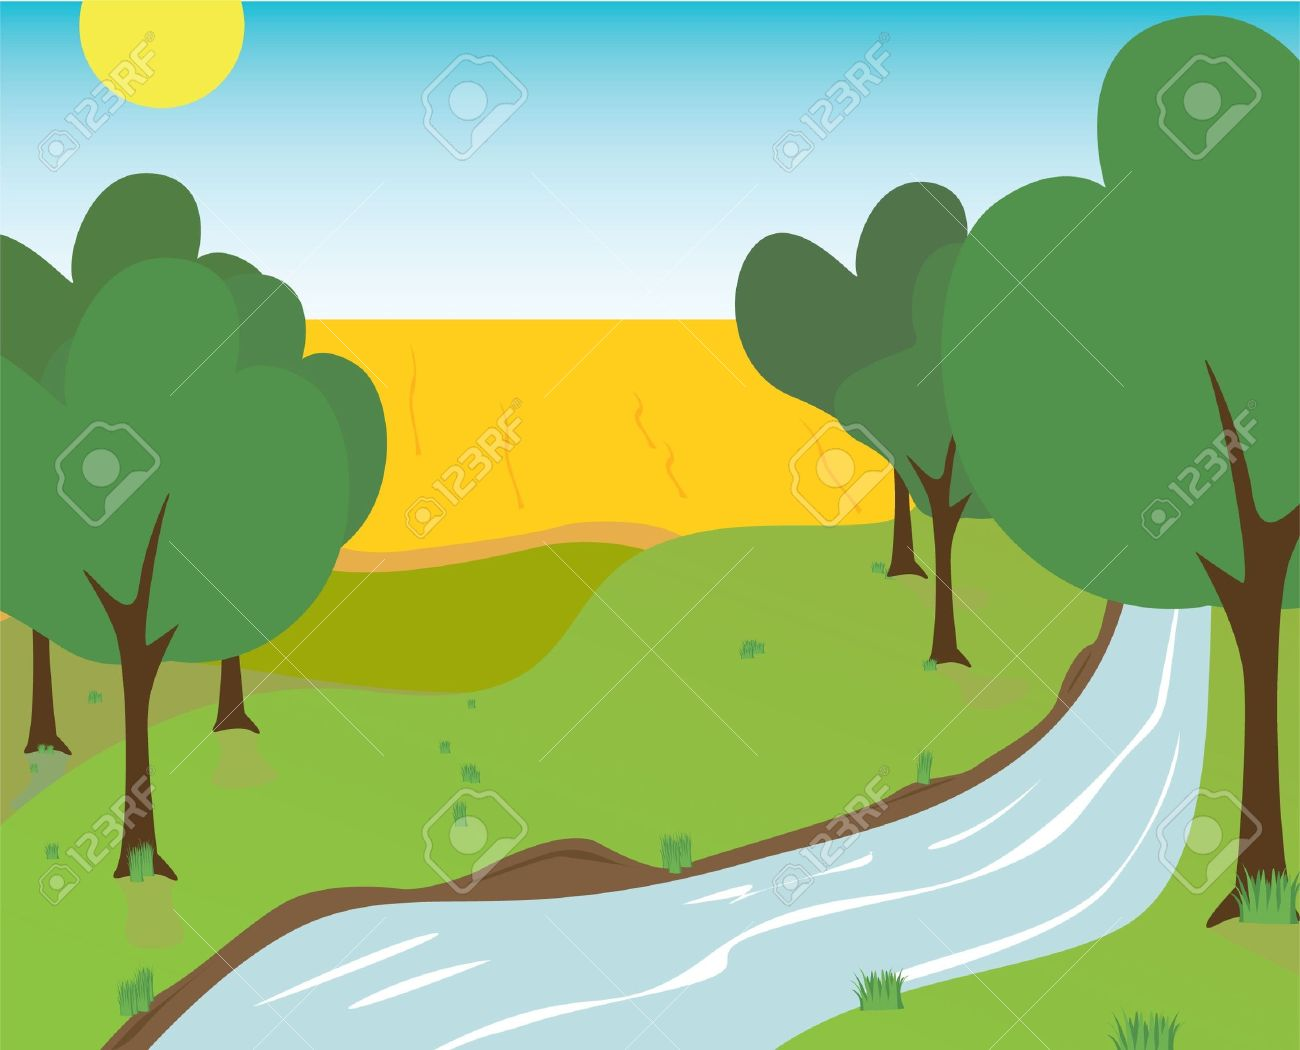 Sream clipart mountain scenery Clipart Stream clipart Download #8